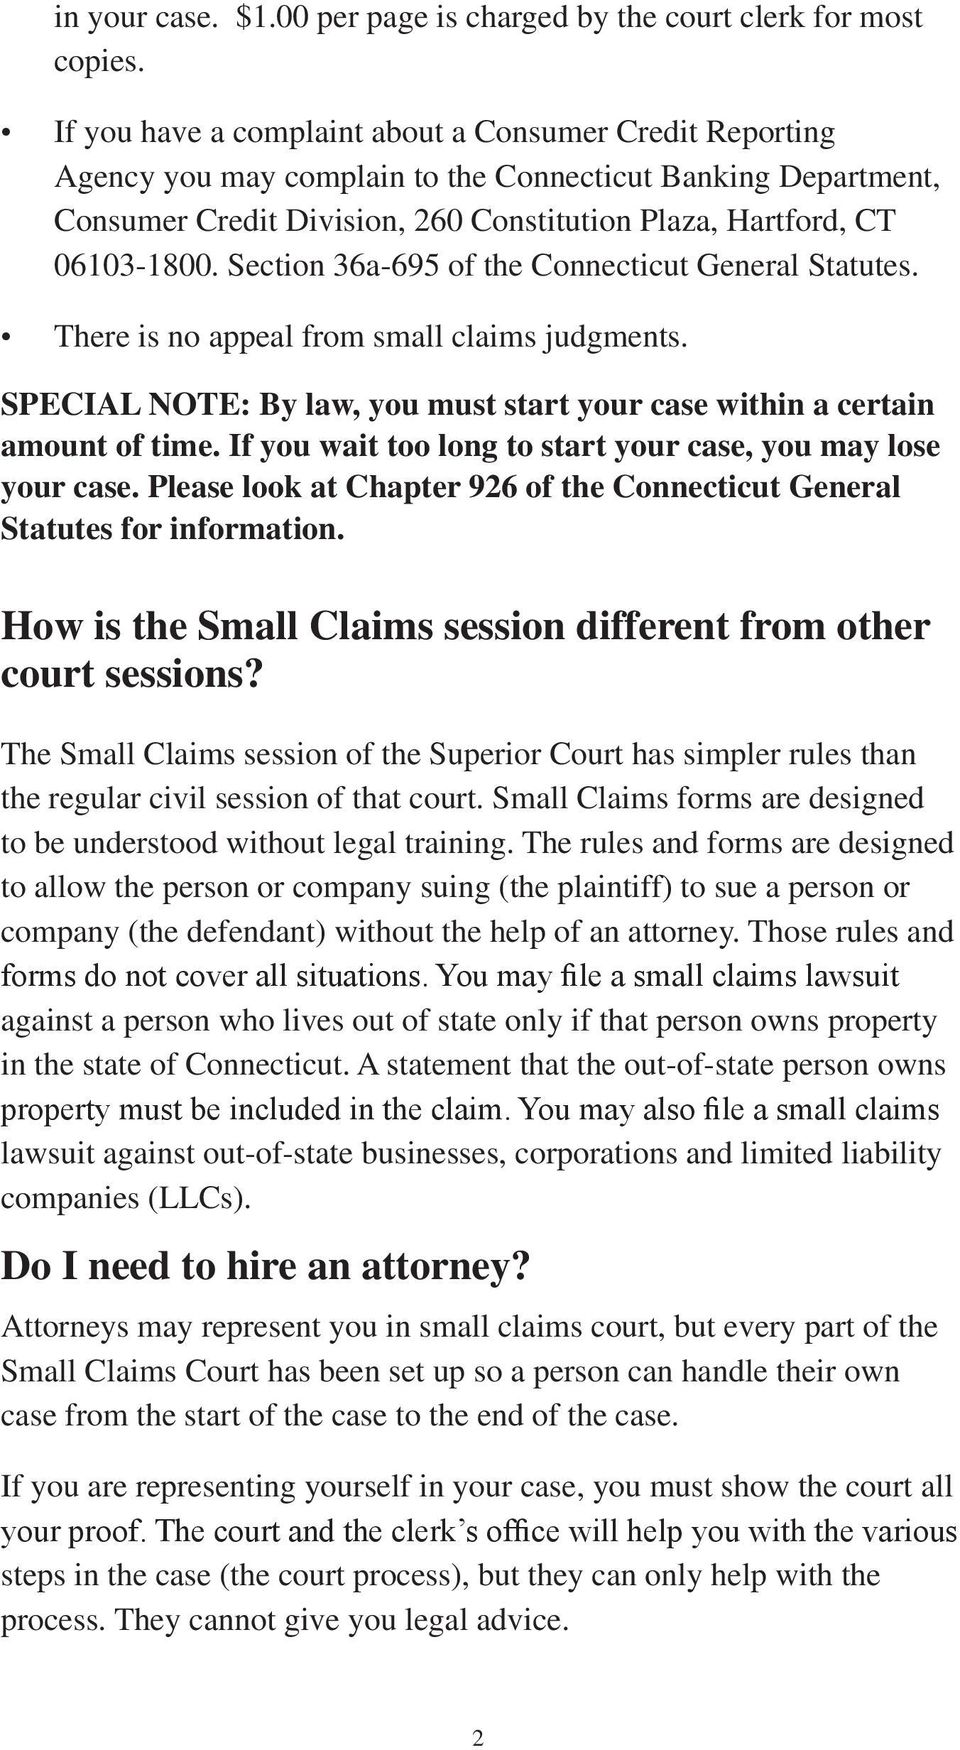 Section 36a-695 of the Connecticut General Statutes. There is no appeal from small claims judgments. SPECIAL NOTE: By law, you must start your case within a certain amount of time.